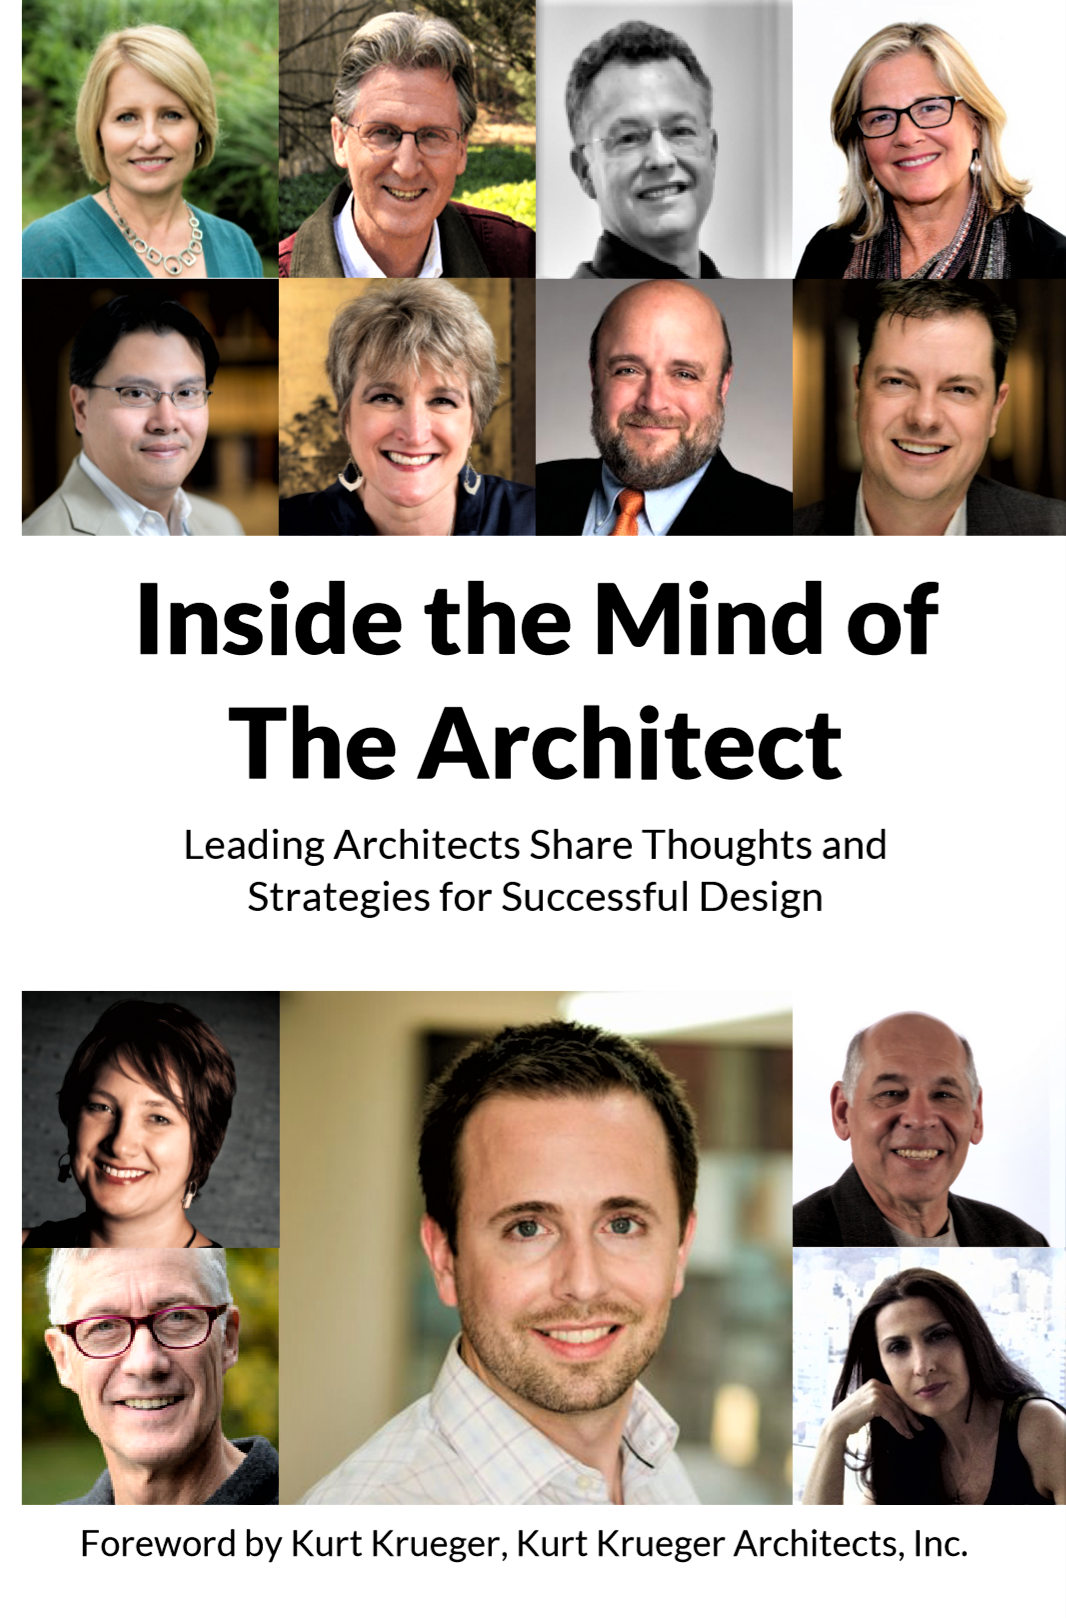 Inside the Mind of the Architect